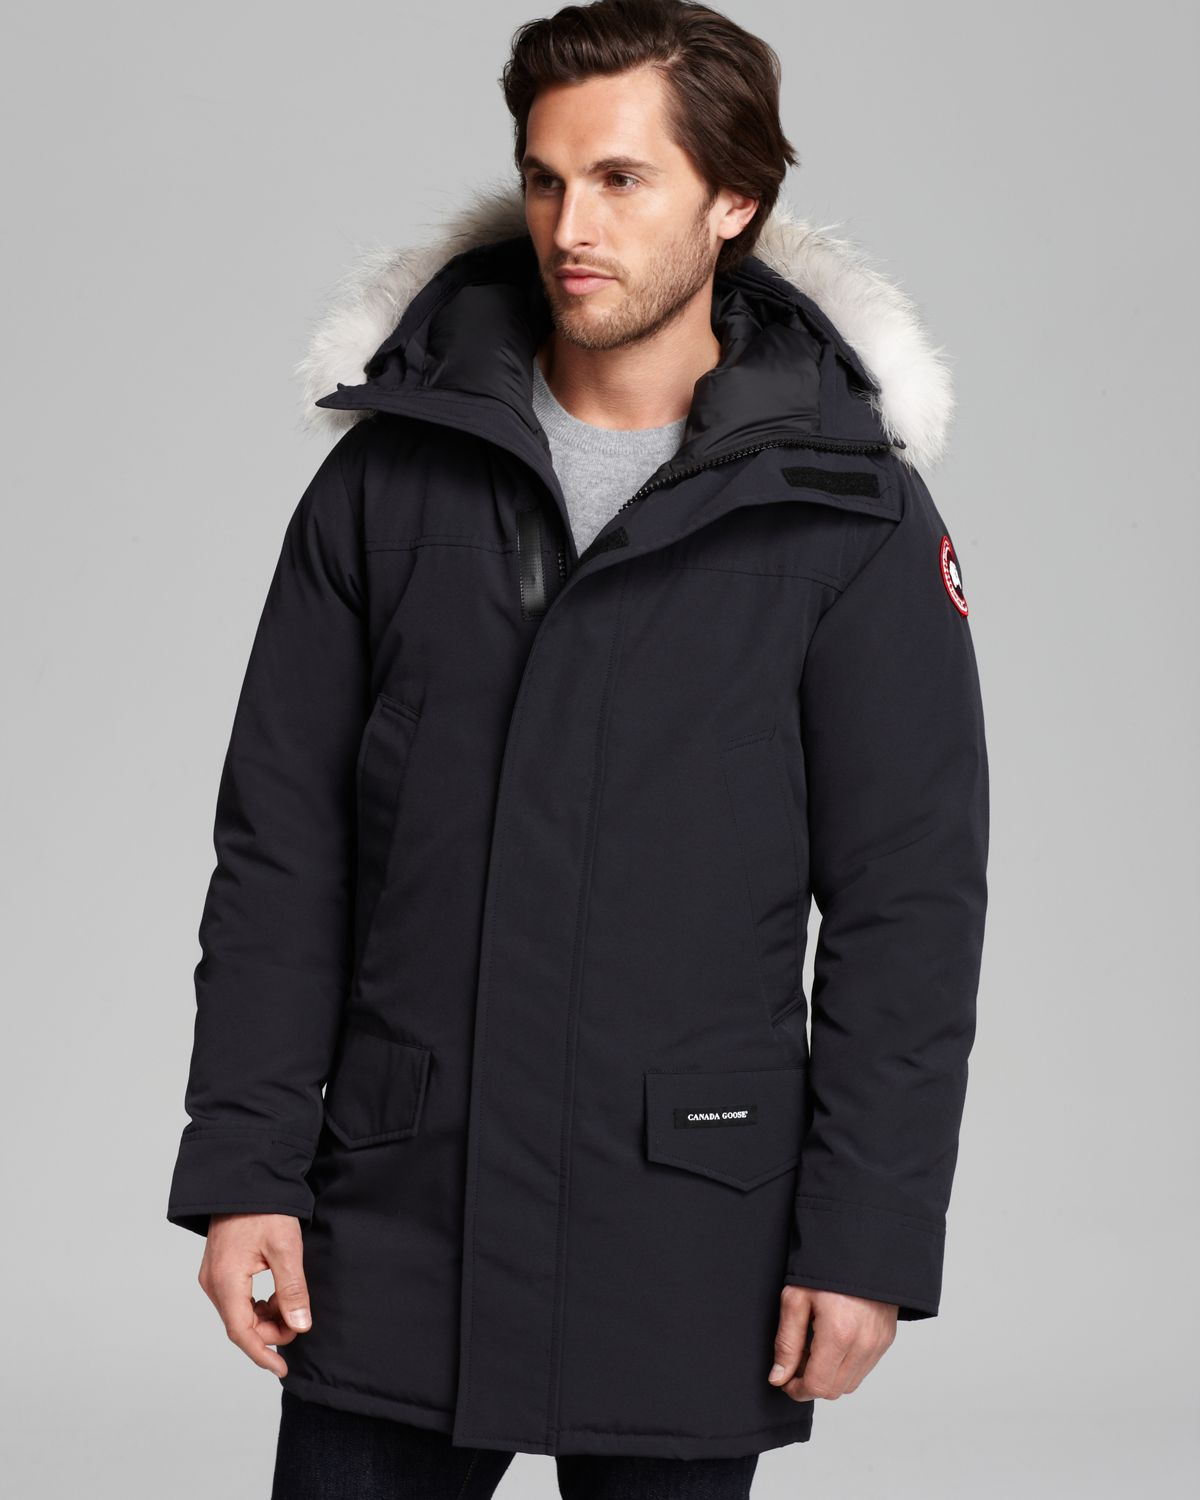 Canada Men S Sevens: Canada Goose Langford Parka With Fur Hood In Blue